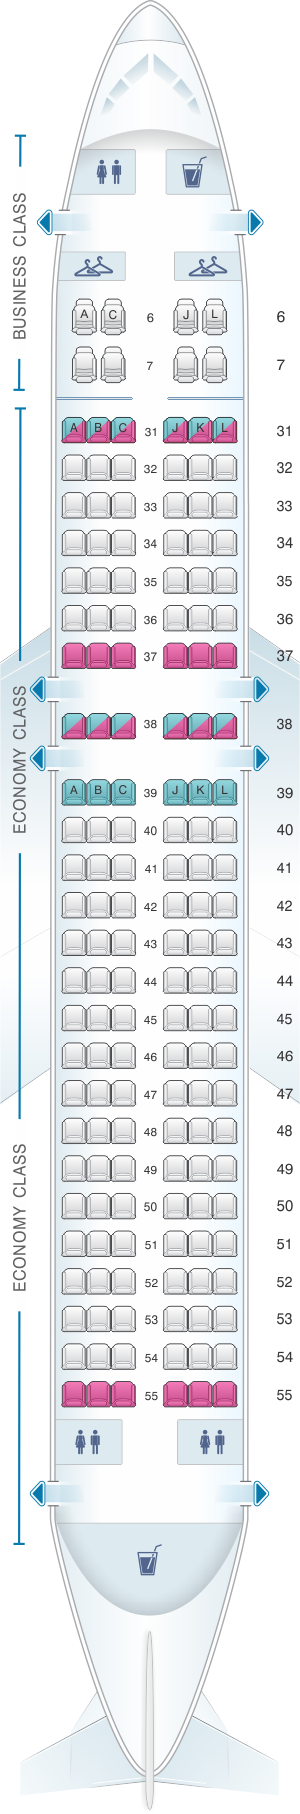 Seat Map China Eastern Airlines Airbus A320 200 | Air ... China Eastern Airlines Seat Map on etihad airlines seat map, american airlines seat map, china airlines 777-300 economy, china eastern airlines business class, united airlines seat map, china southern airlines seat map, air china seat map, japan airlines seat map, china airlines 777-300er, iberia airlines seat map, copa airlines seat map, shanghai airlines seat map, china airlines seat selection, garuda airlines seat map, lan airlines seat map, south african airlines seat map, ethiopian airlines seat map, croatia airlines seat map, china eastern airlines route map, china eastern airlines seat assignment,